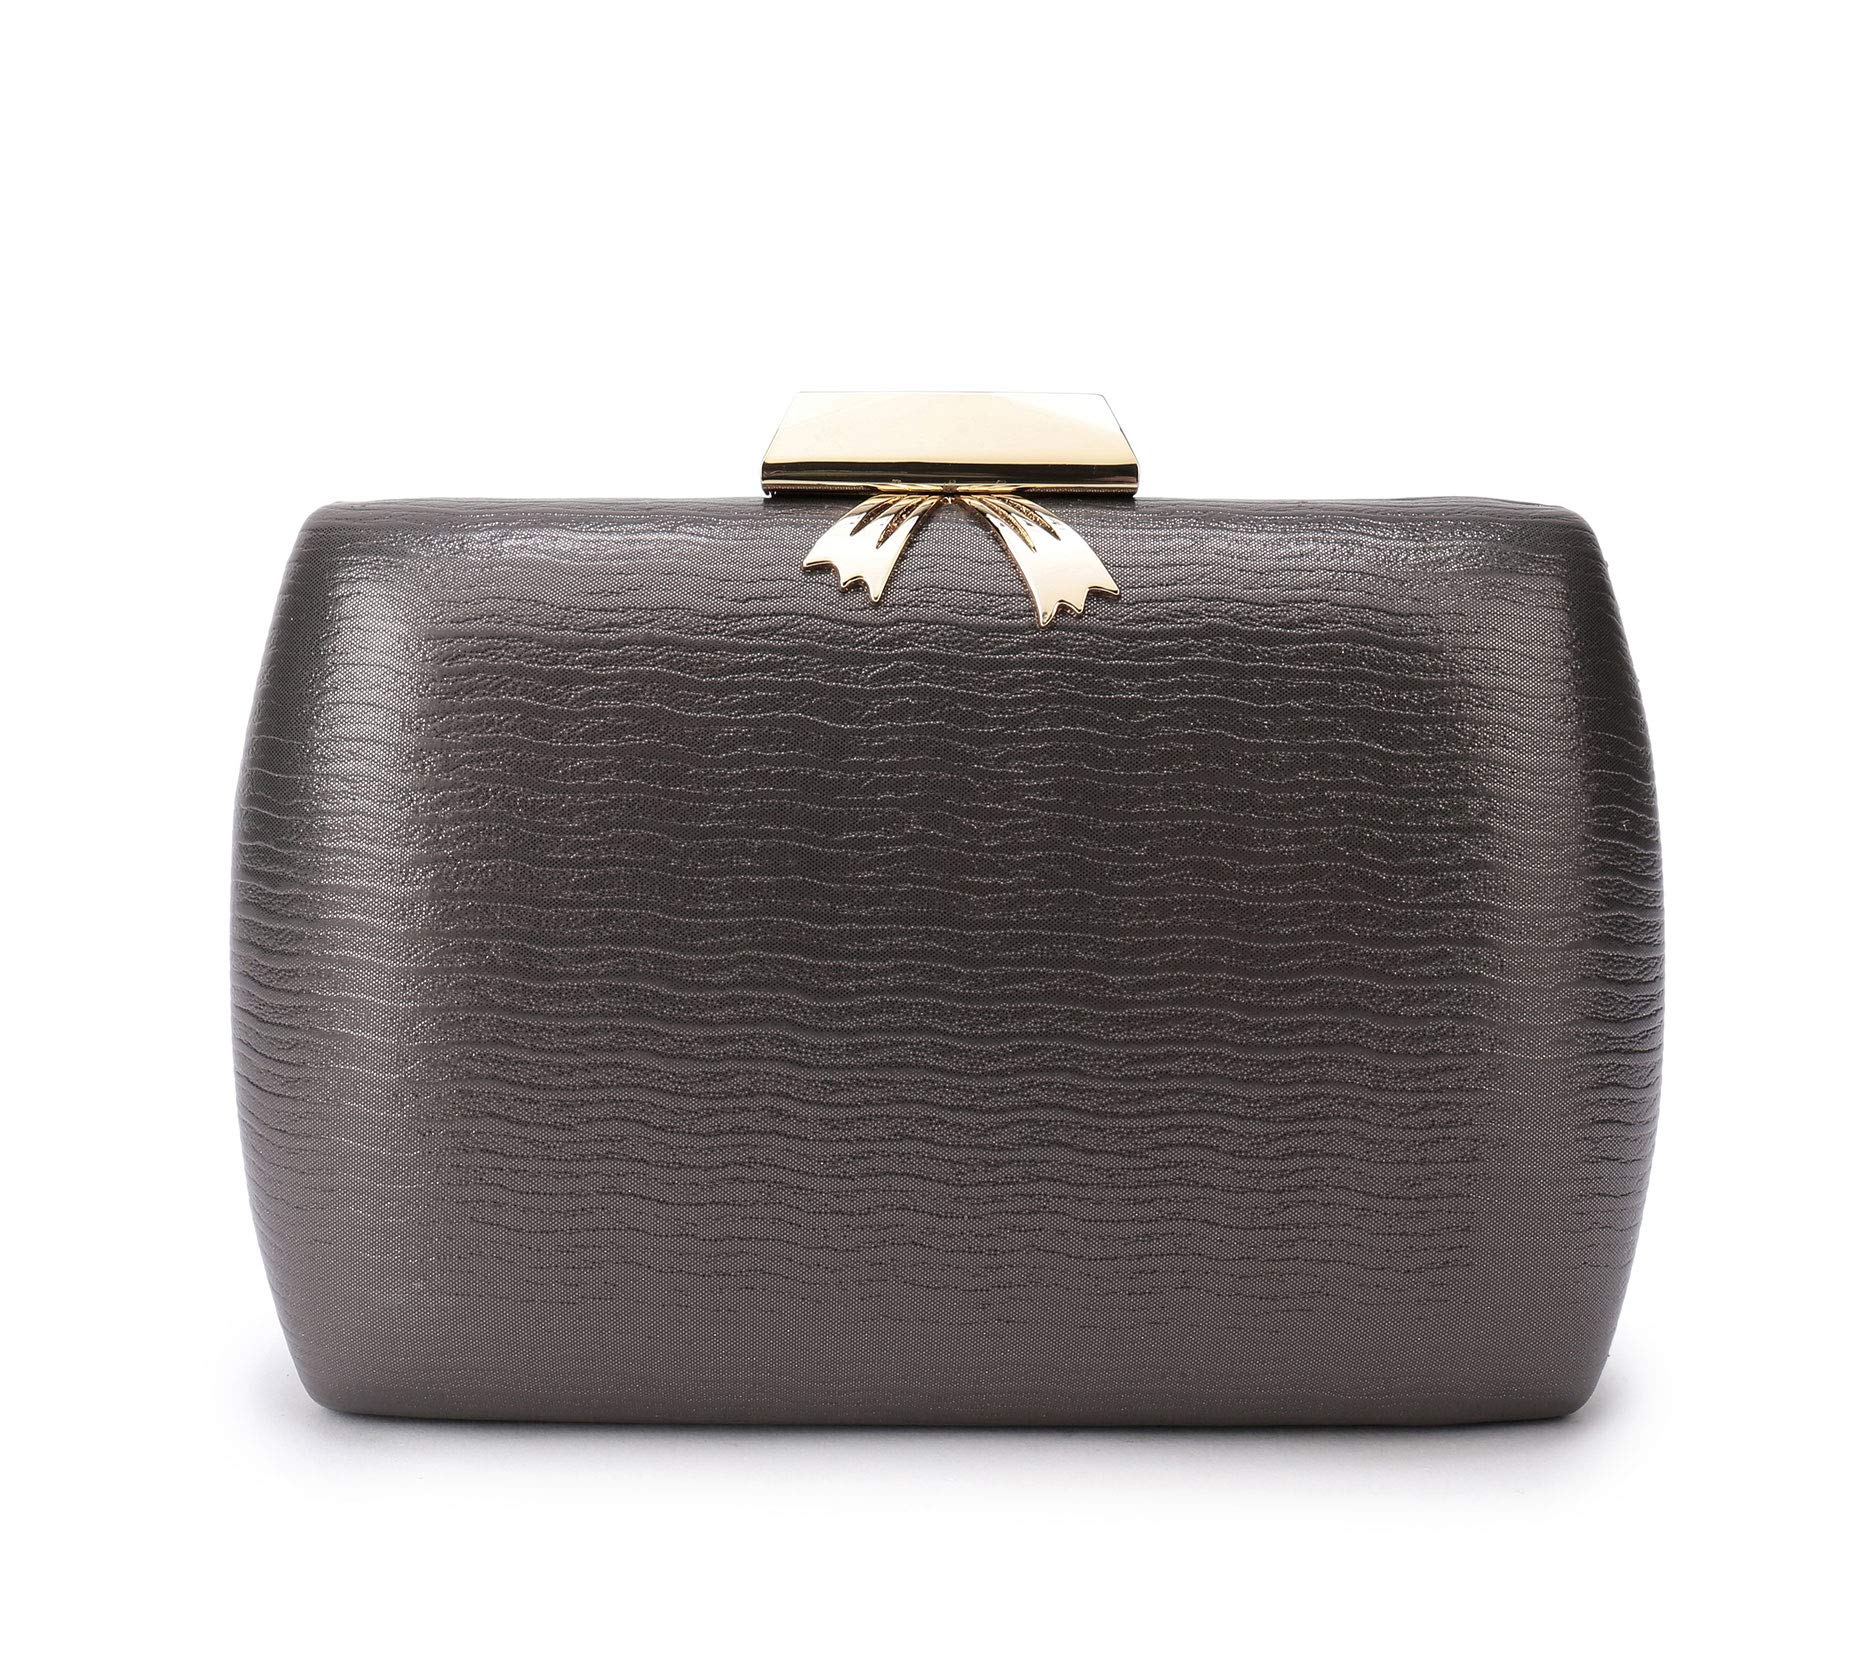 Leather Evening Clutches Handbag Bridal Purse Party Bags For Prom Cocktail Wedding Women/Girls (Copper)